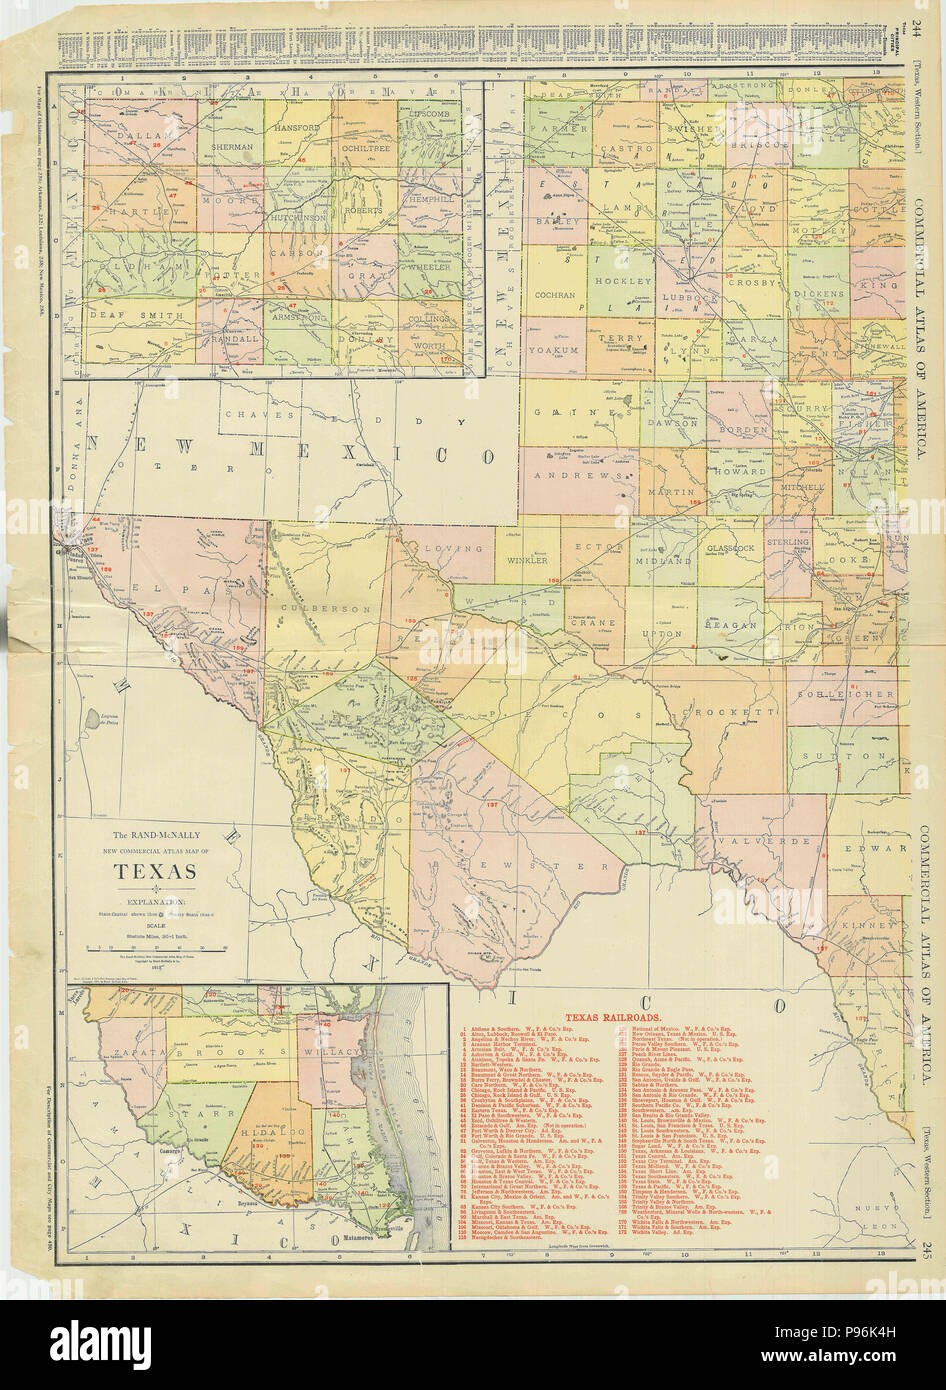 West Texas 1913 Map Stock Photo: 212203057 - Alamy